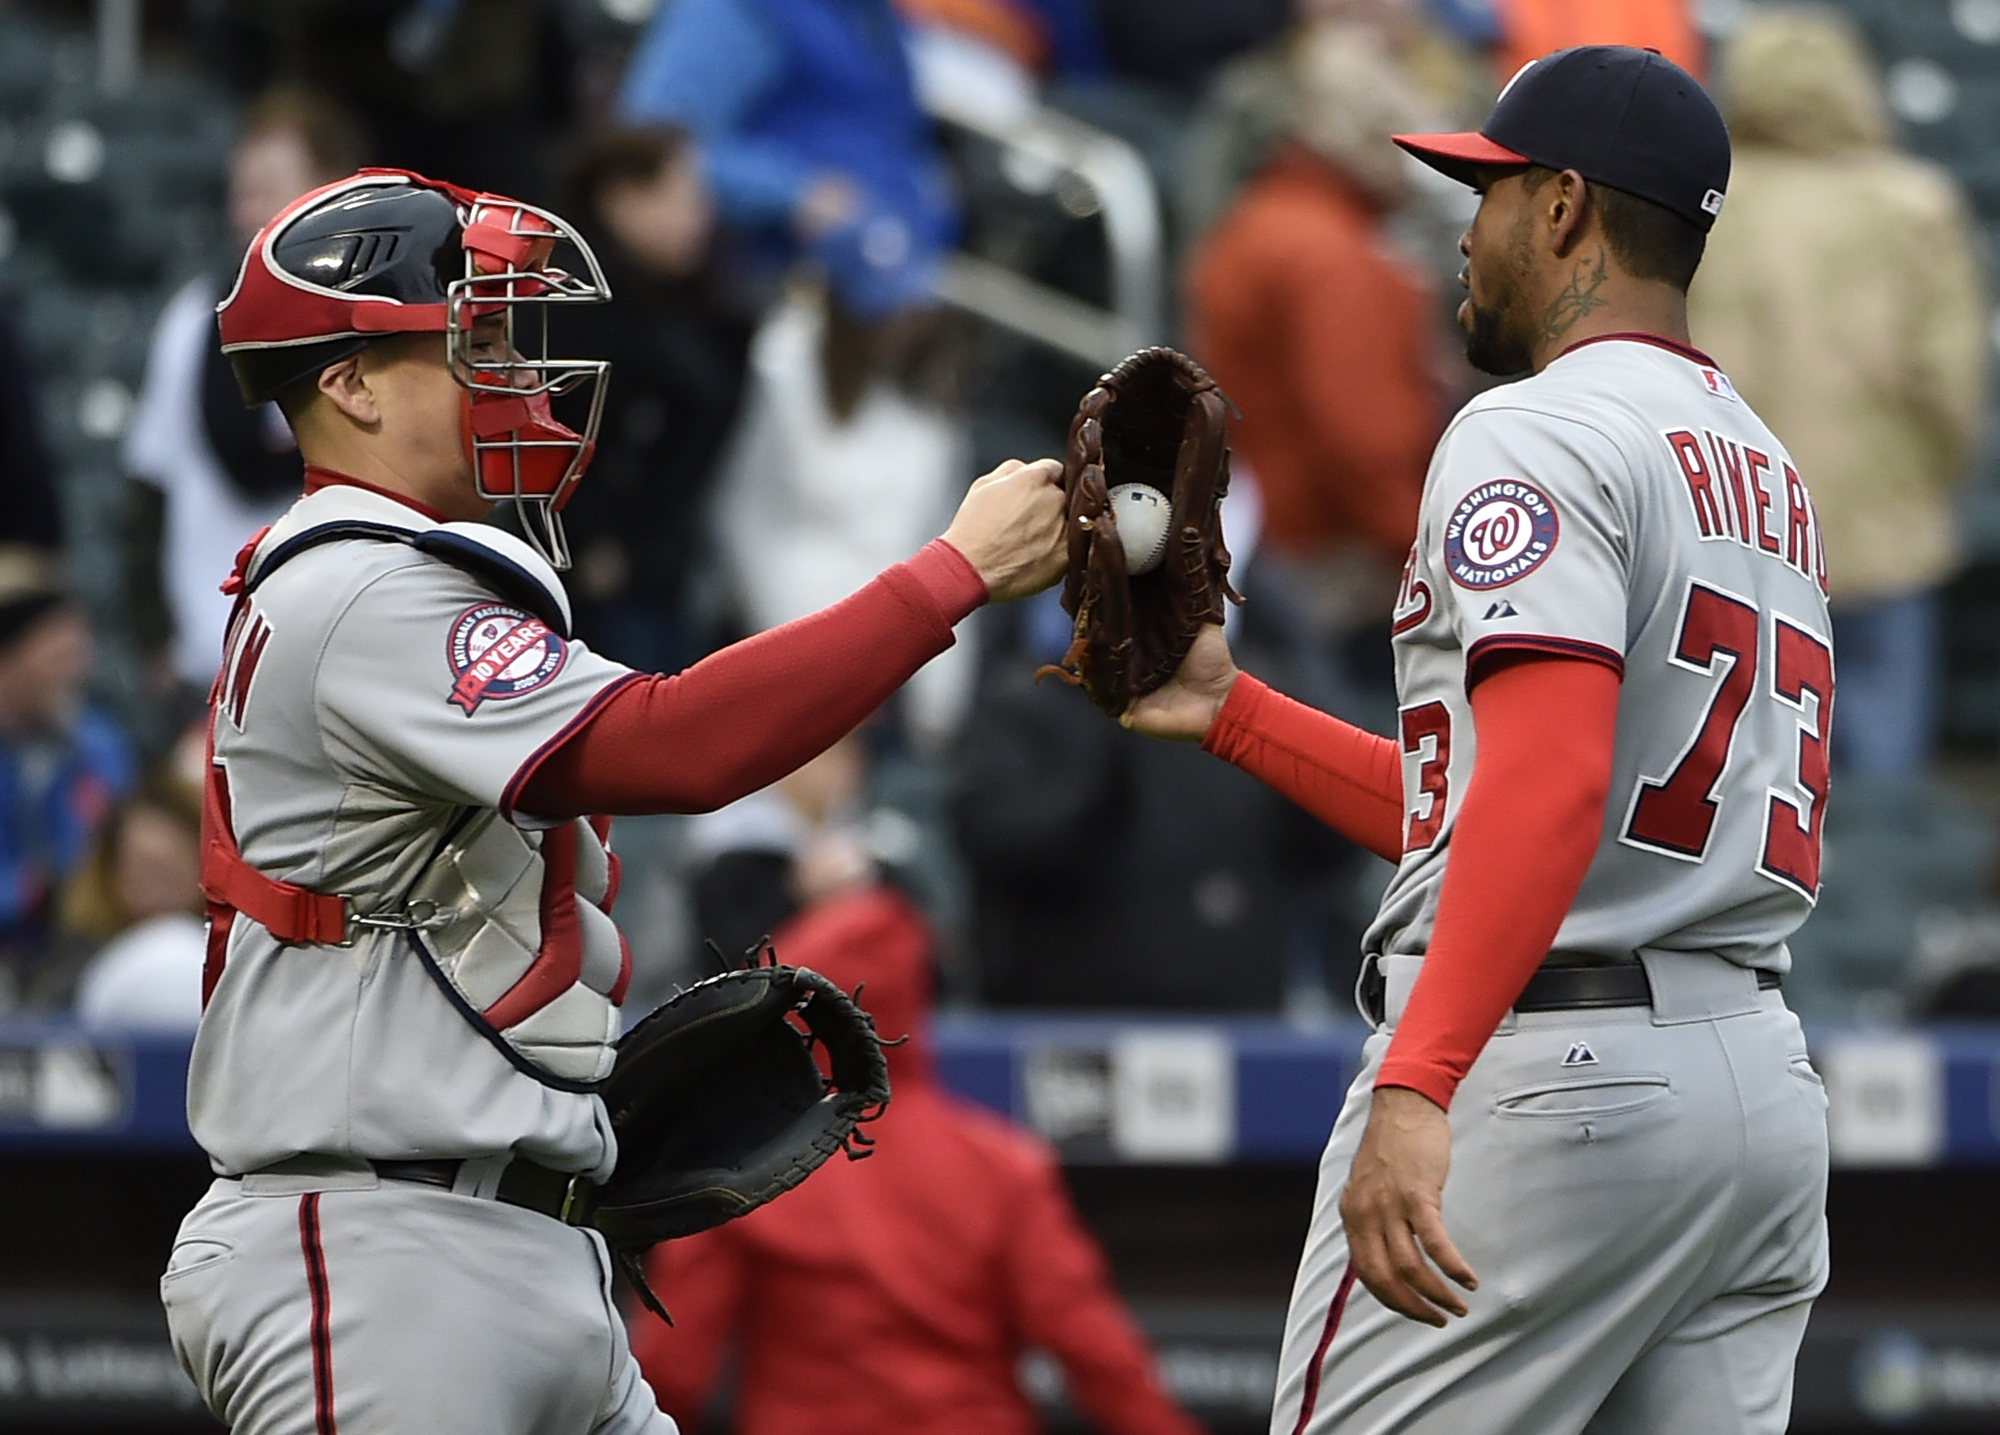 Washington Nationals catcher Jose Lobaton congratulates Washington Nationals relief pitcher Felipe Rivero (73) after the Nationals beat the New York Mets 3-1 in the first baseball game of a doubleheader, Saturday, Oct. 3, 2015, in New York. (AP Photo/Kath